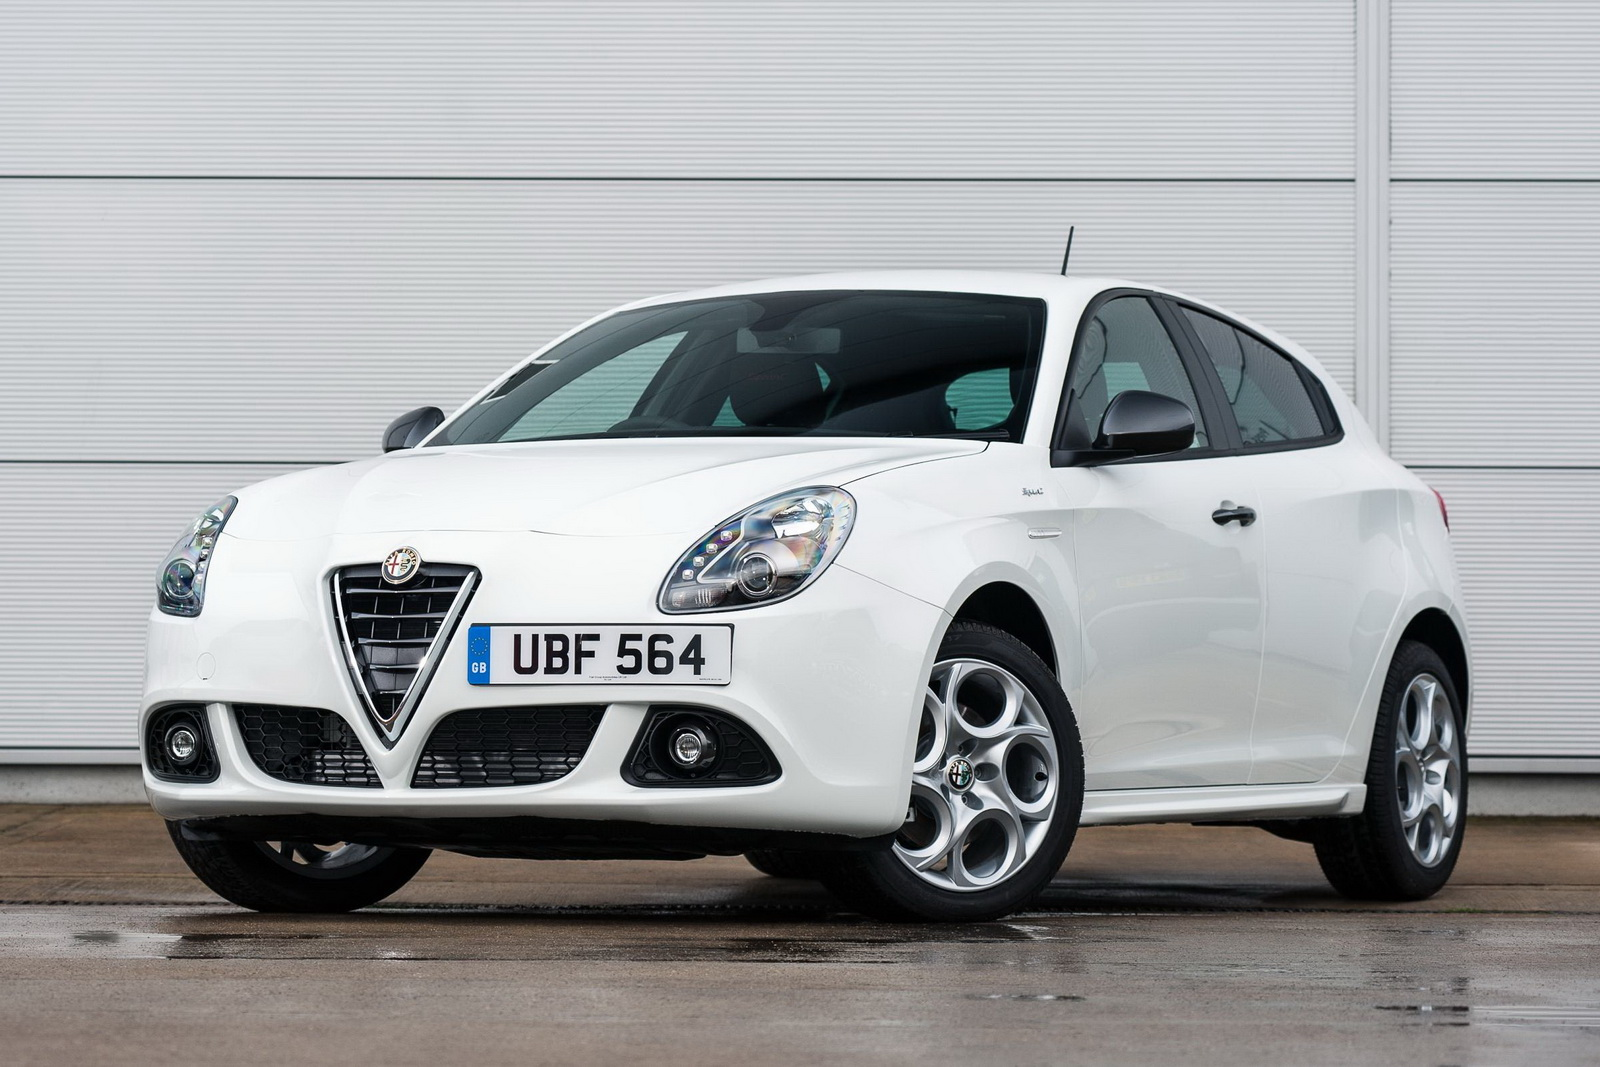 alfa romeo giulietta sprint launched in the uk priced from 20 490. Black Bedroom Furniture Sets. Home Design Ideas